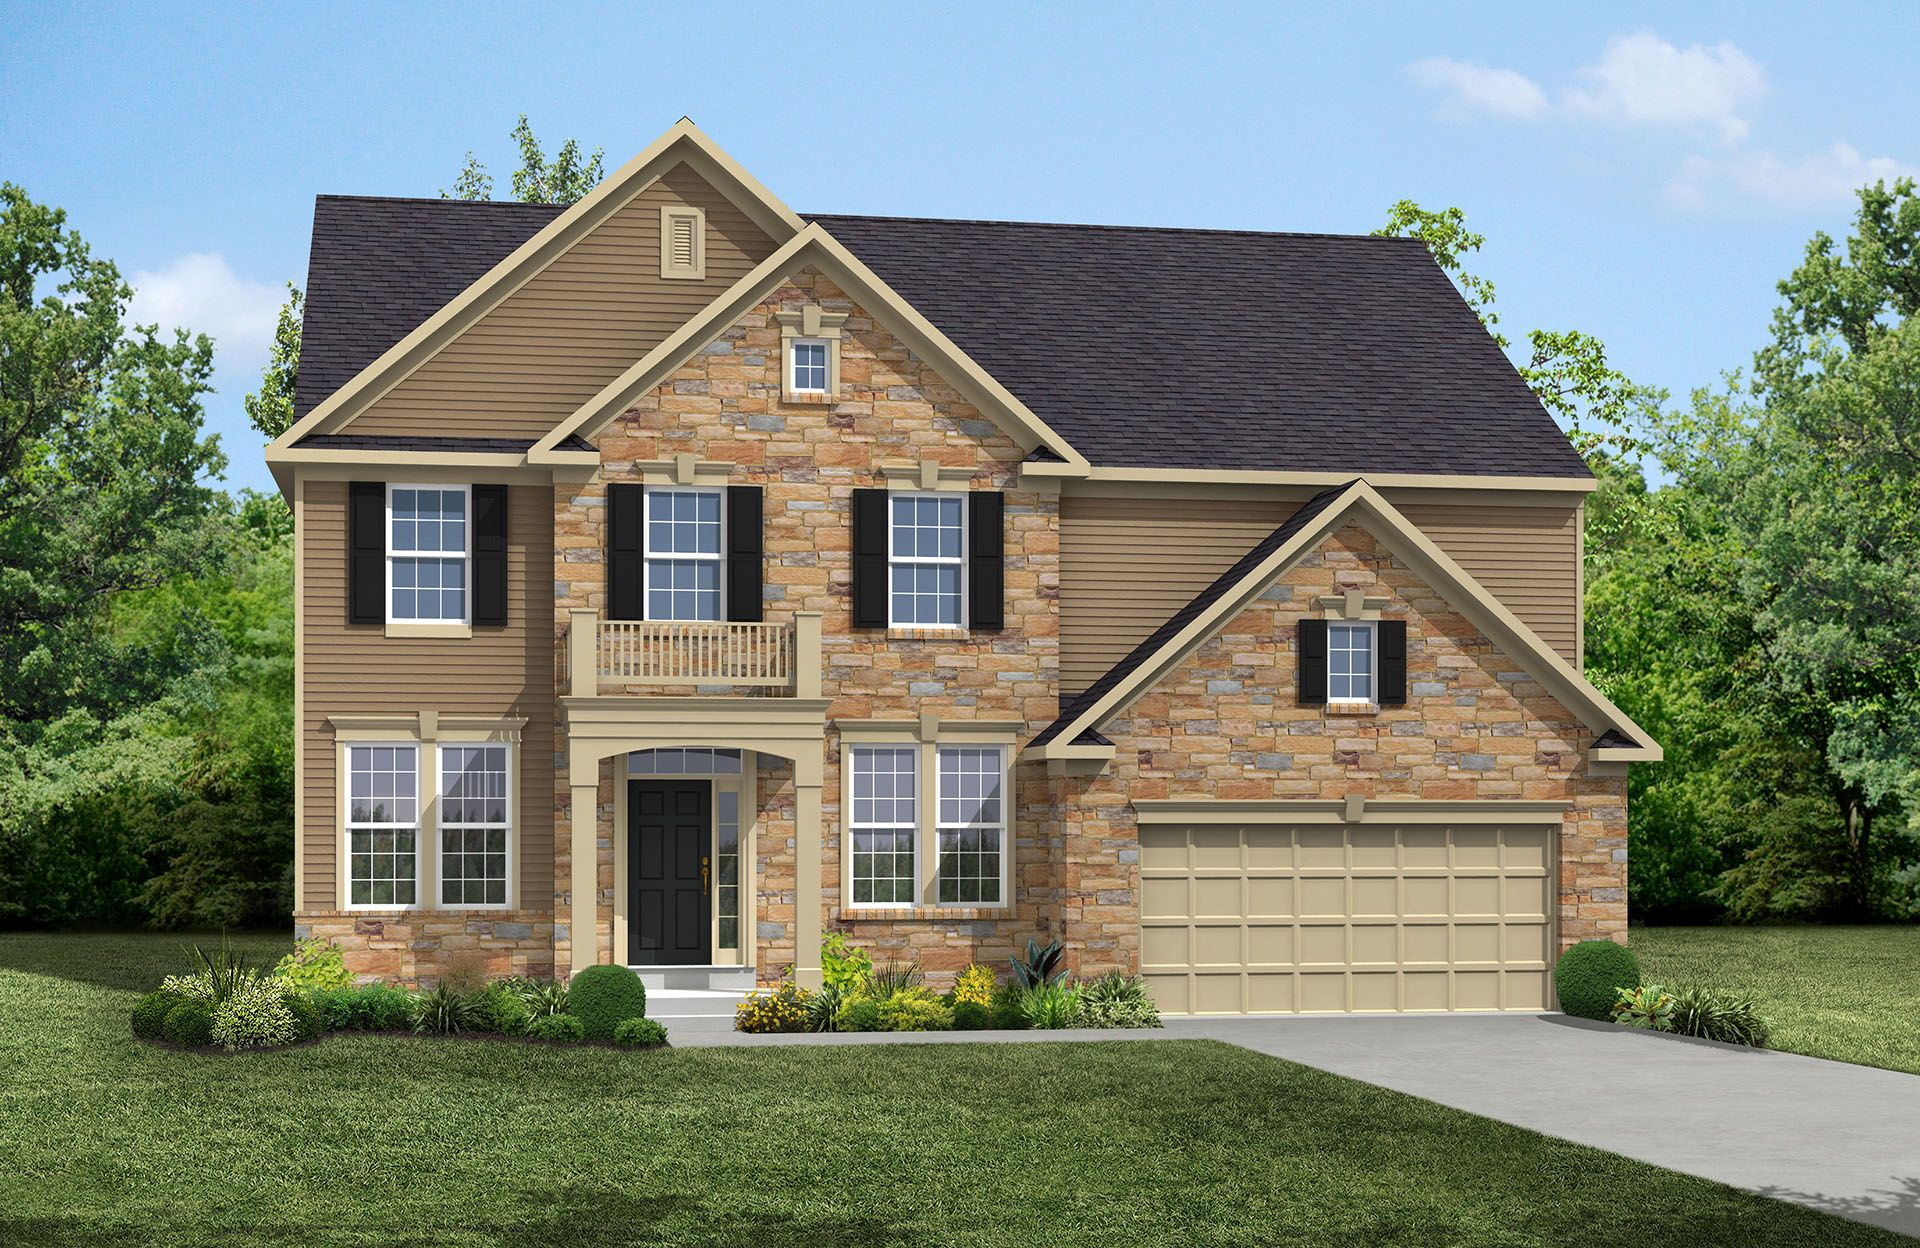 The Preserve at Smith Run by Drees Homes